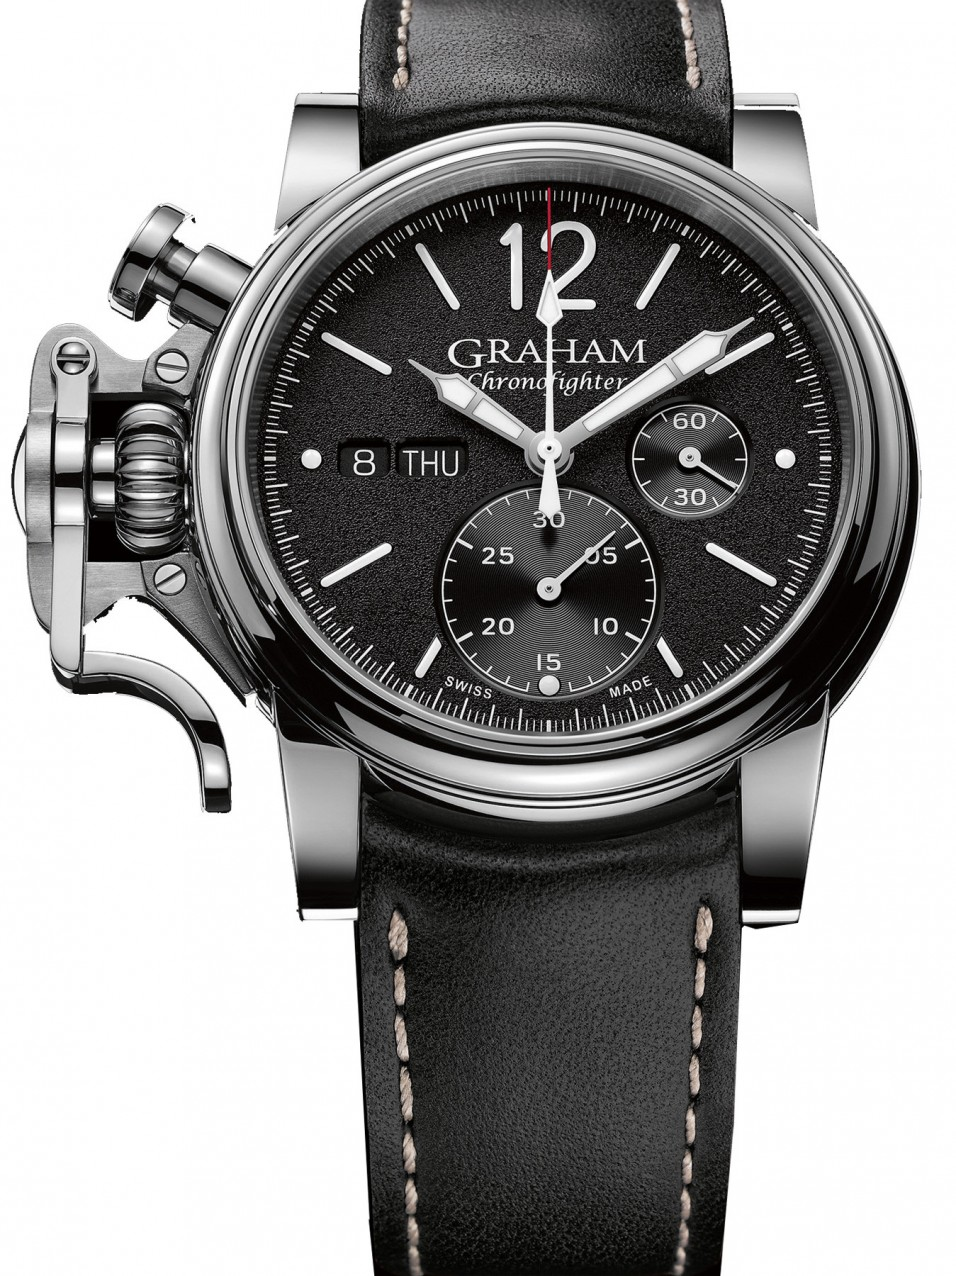 Graham Chronofighter Vintage hands on